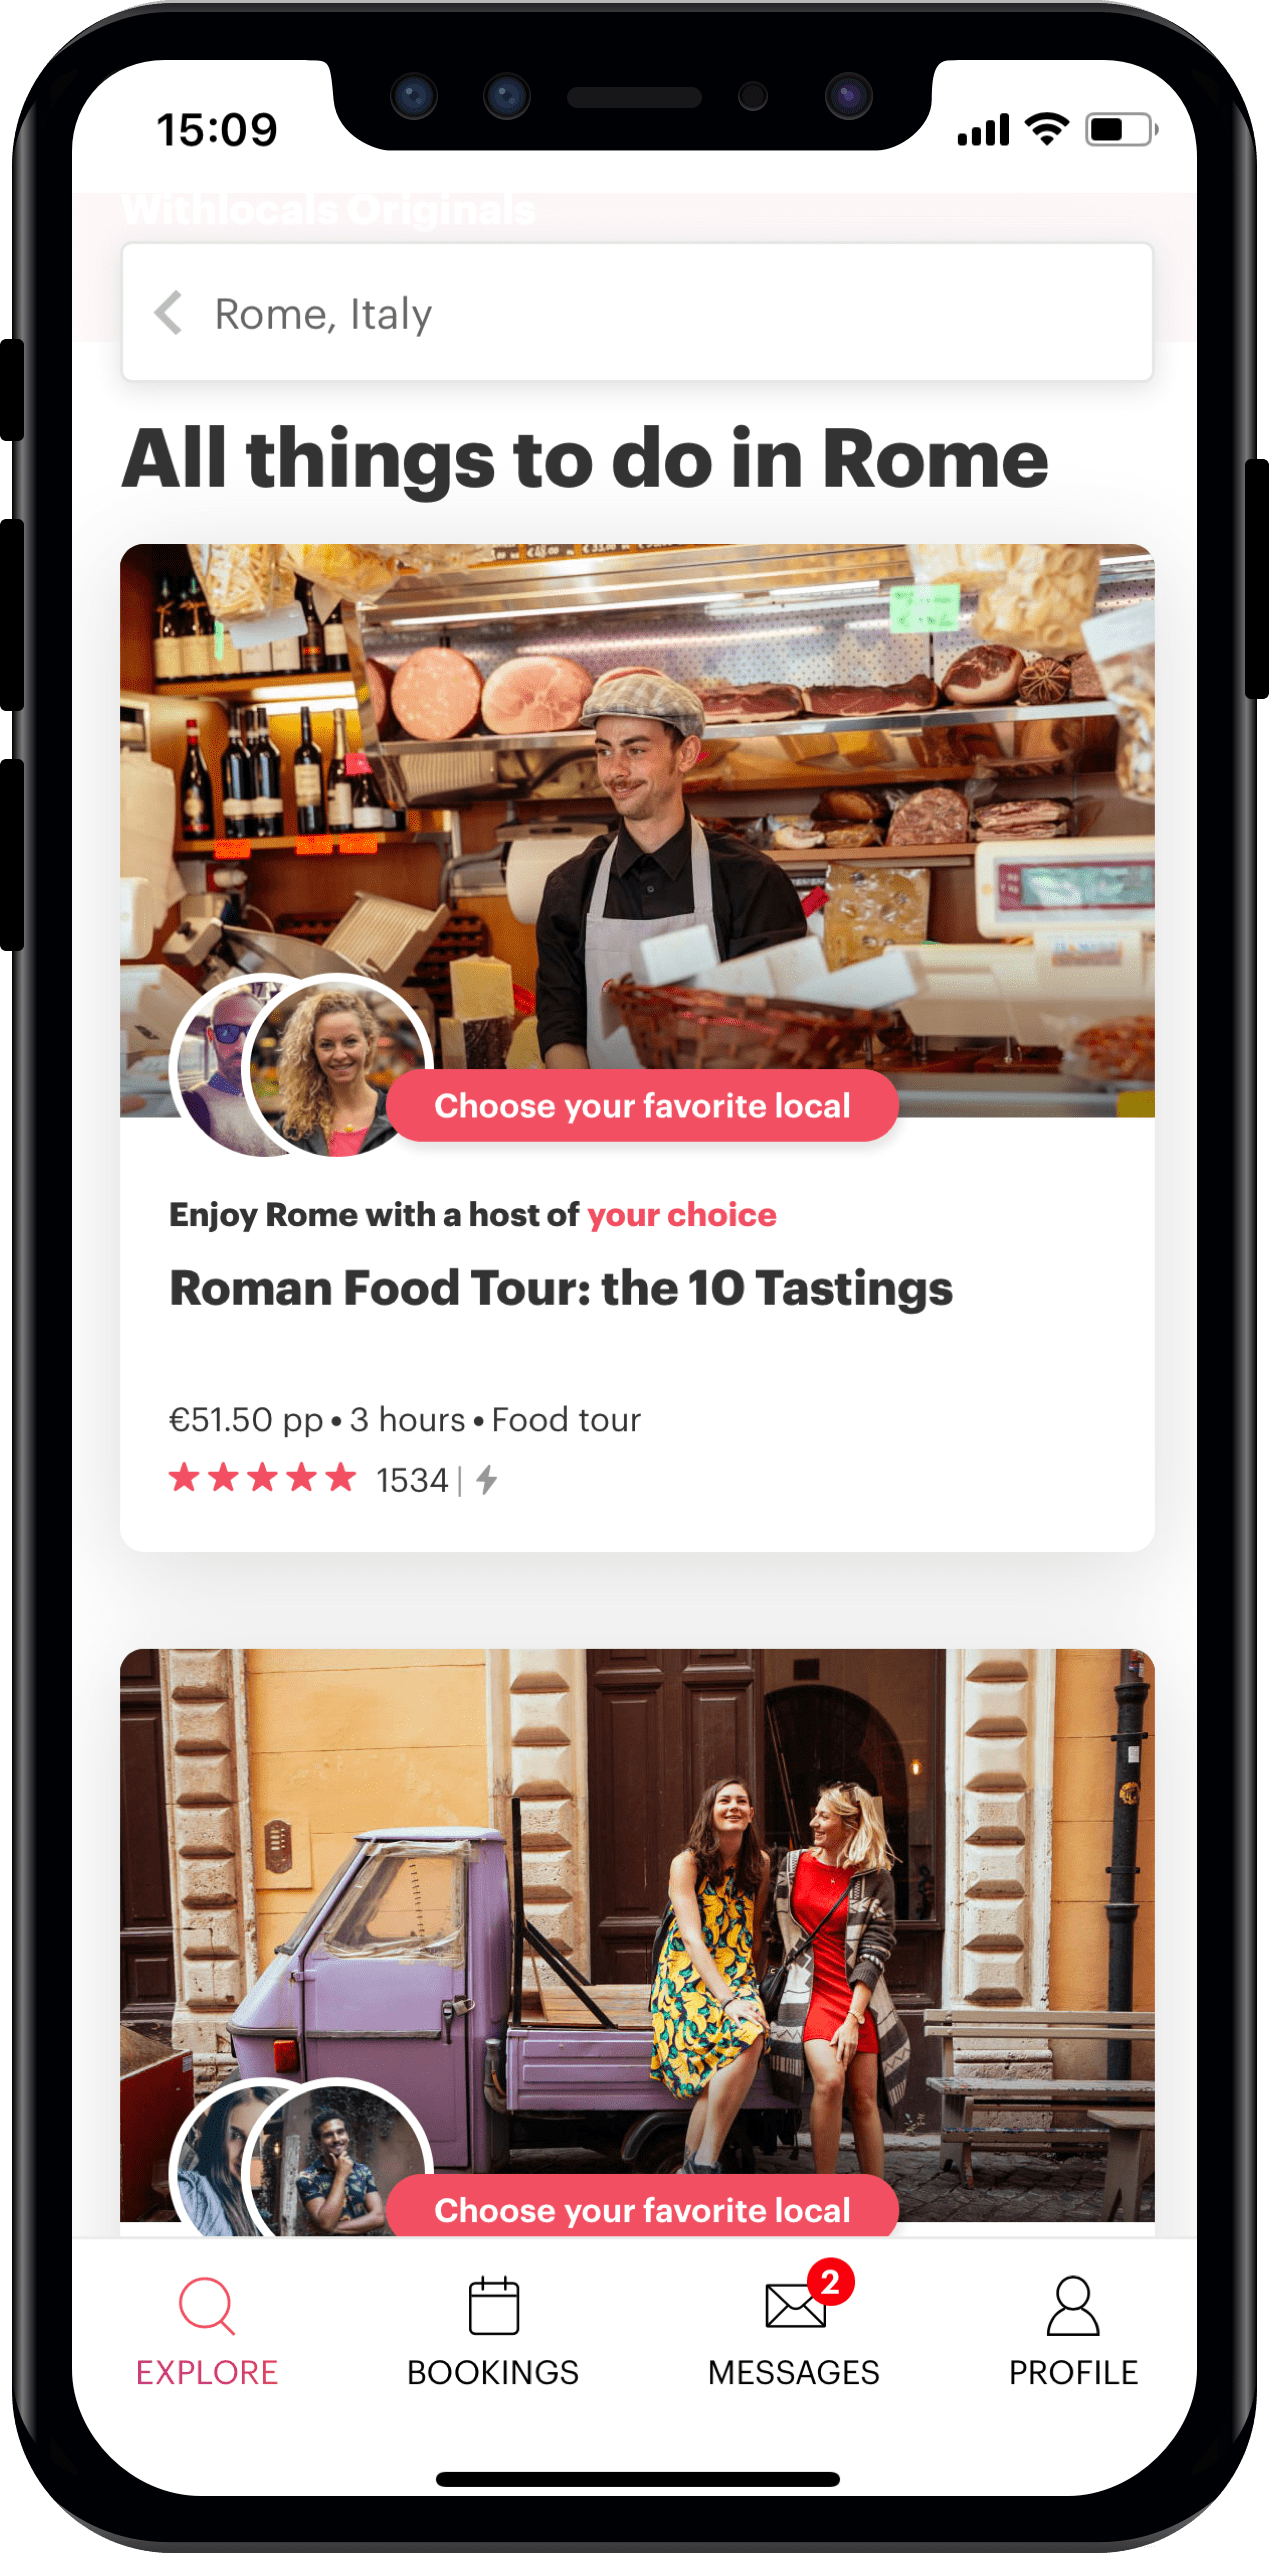 Connect with Locals with the Withlocals iPhone app